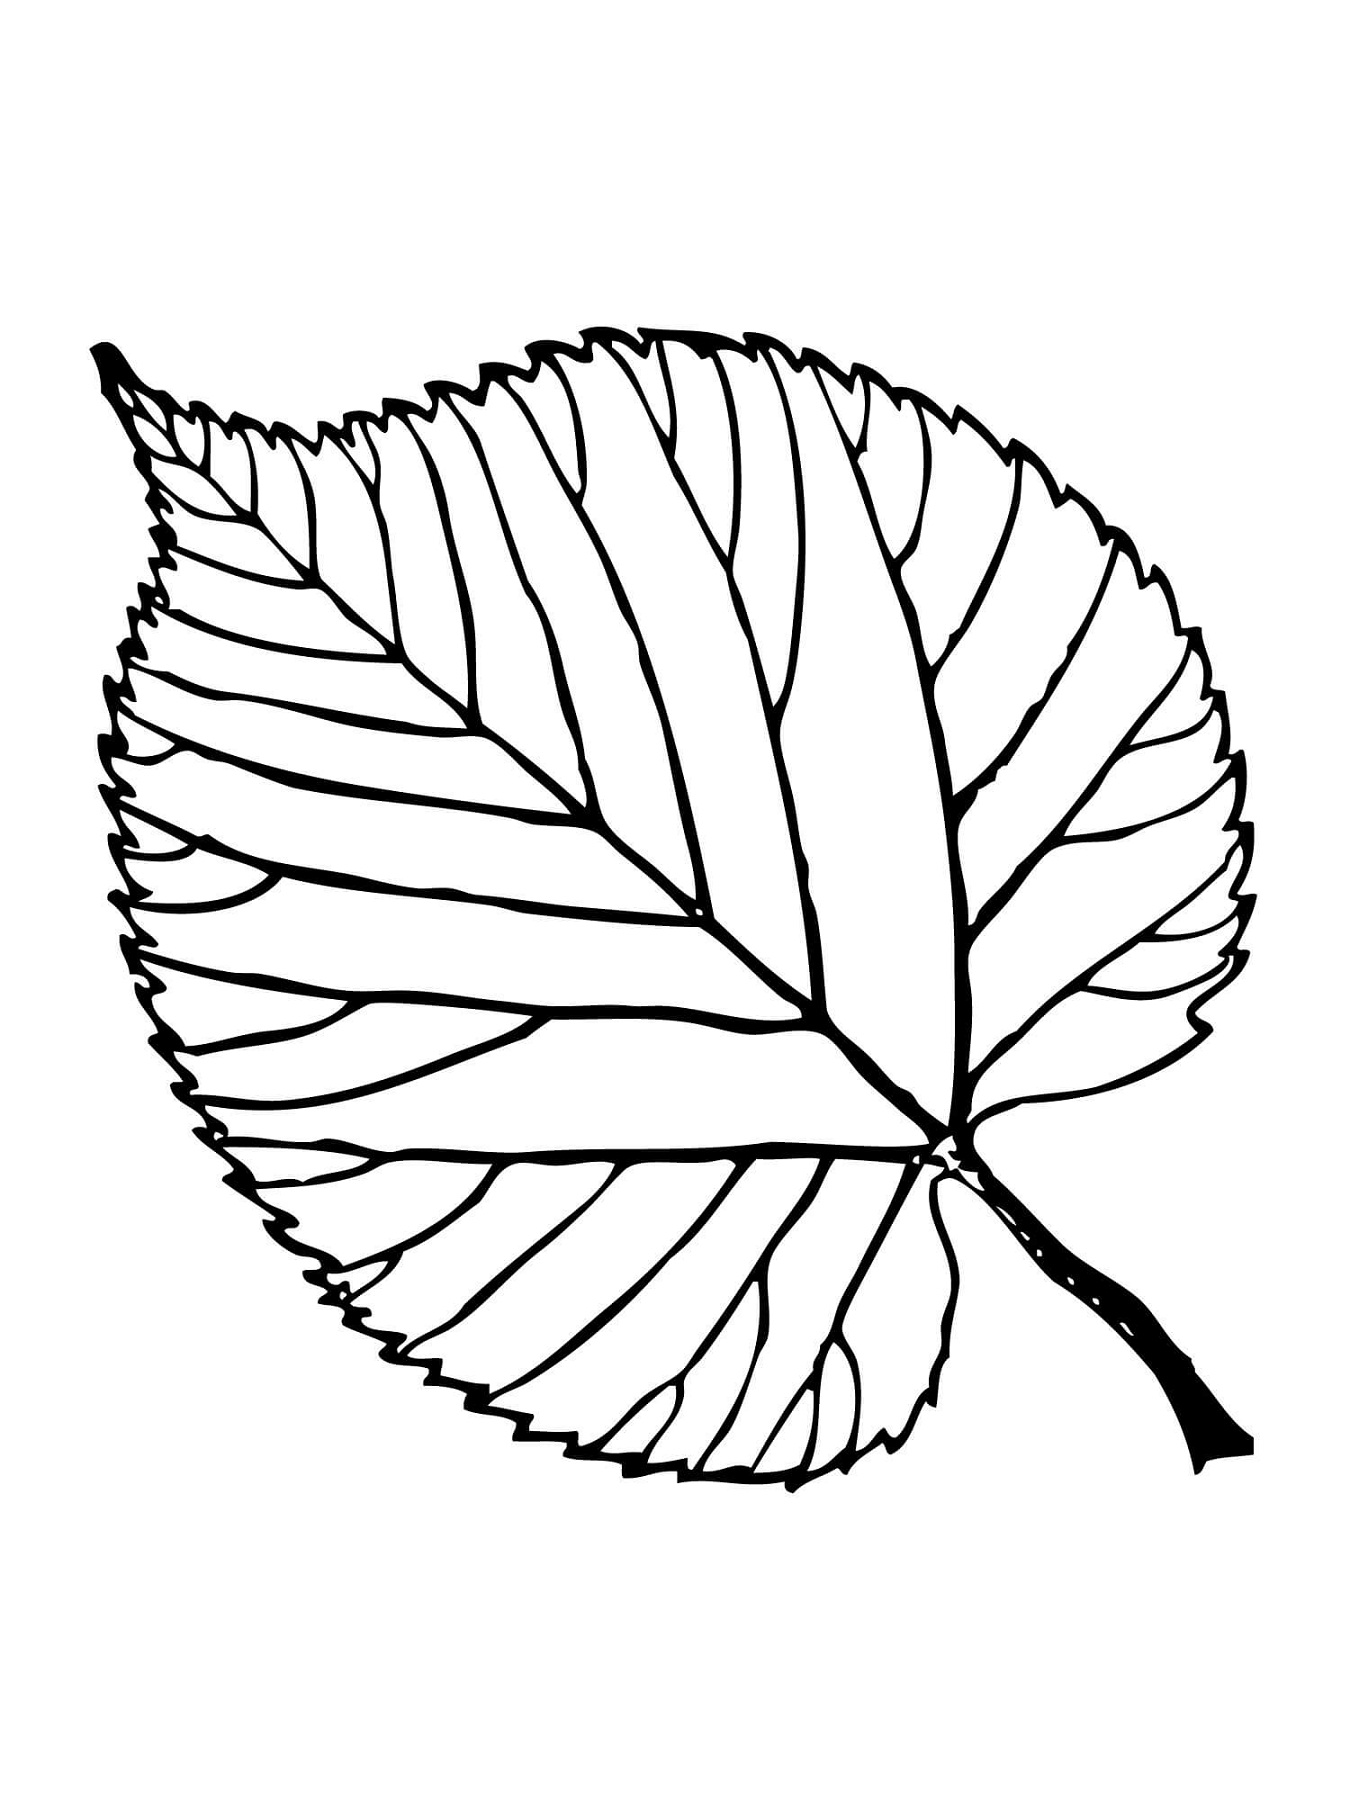 1350x1800 Leaf Coloring Pages Printable Activity Shelter Coloring Pages